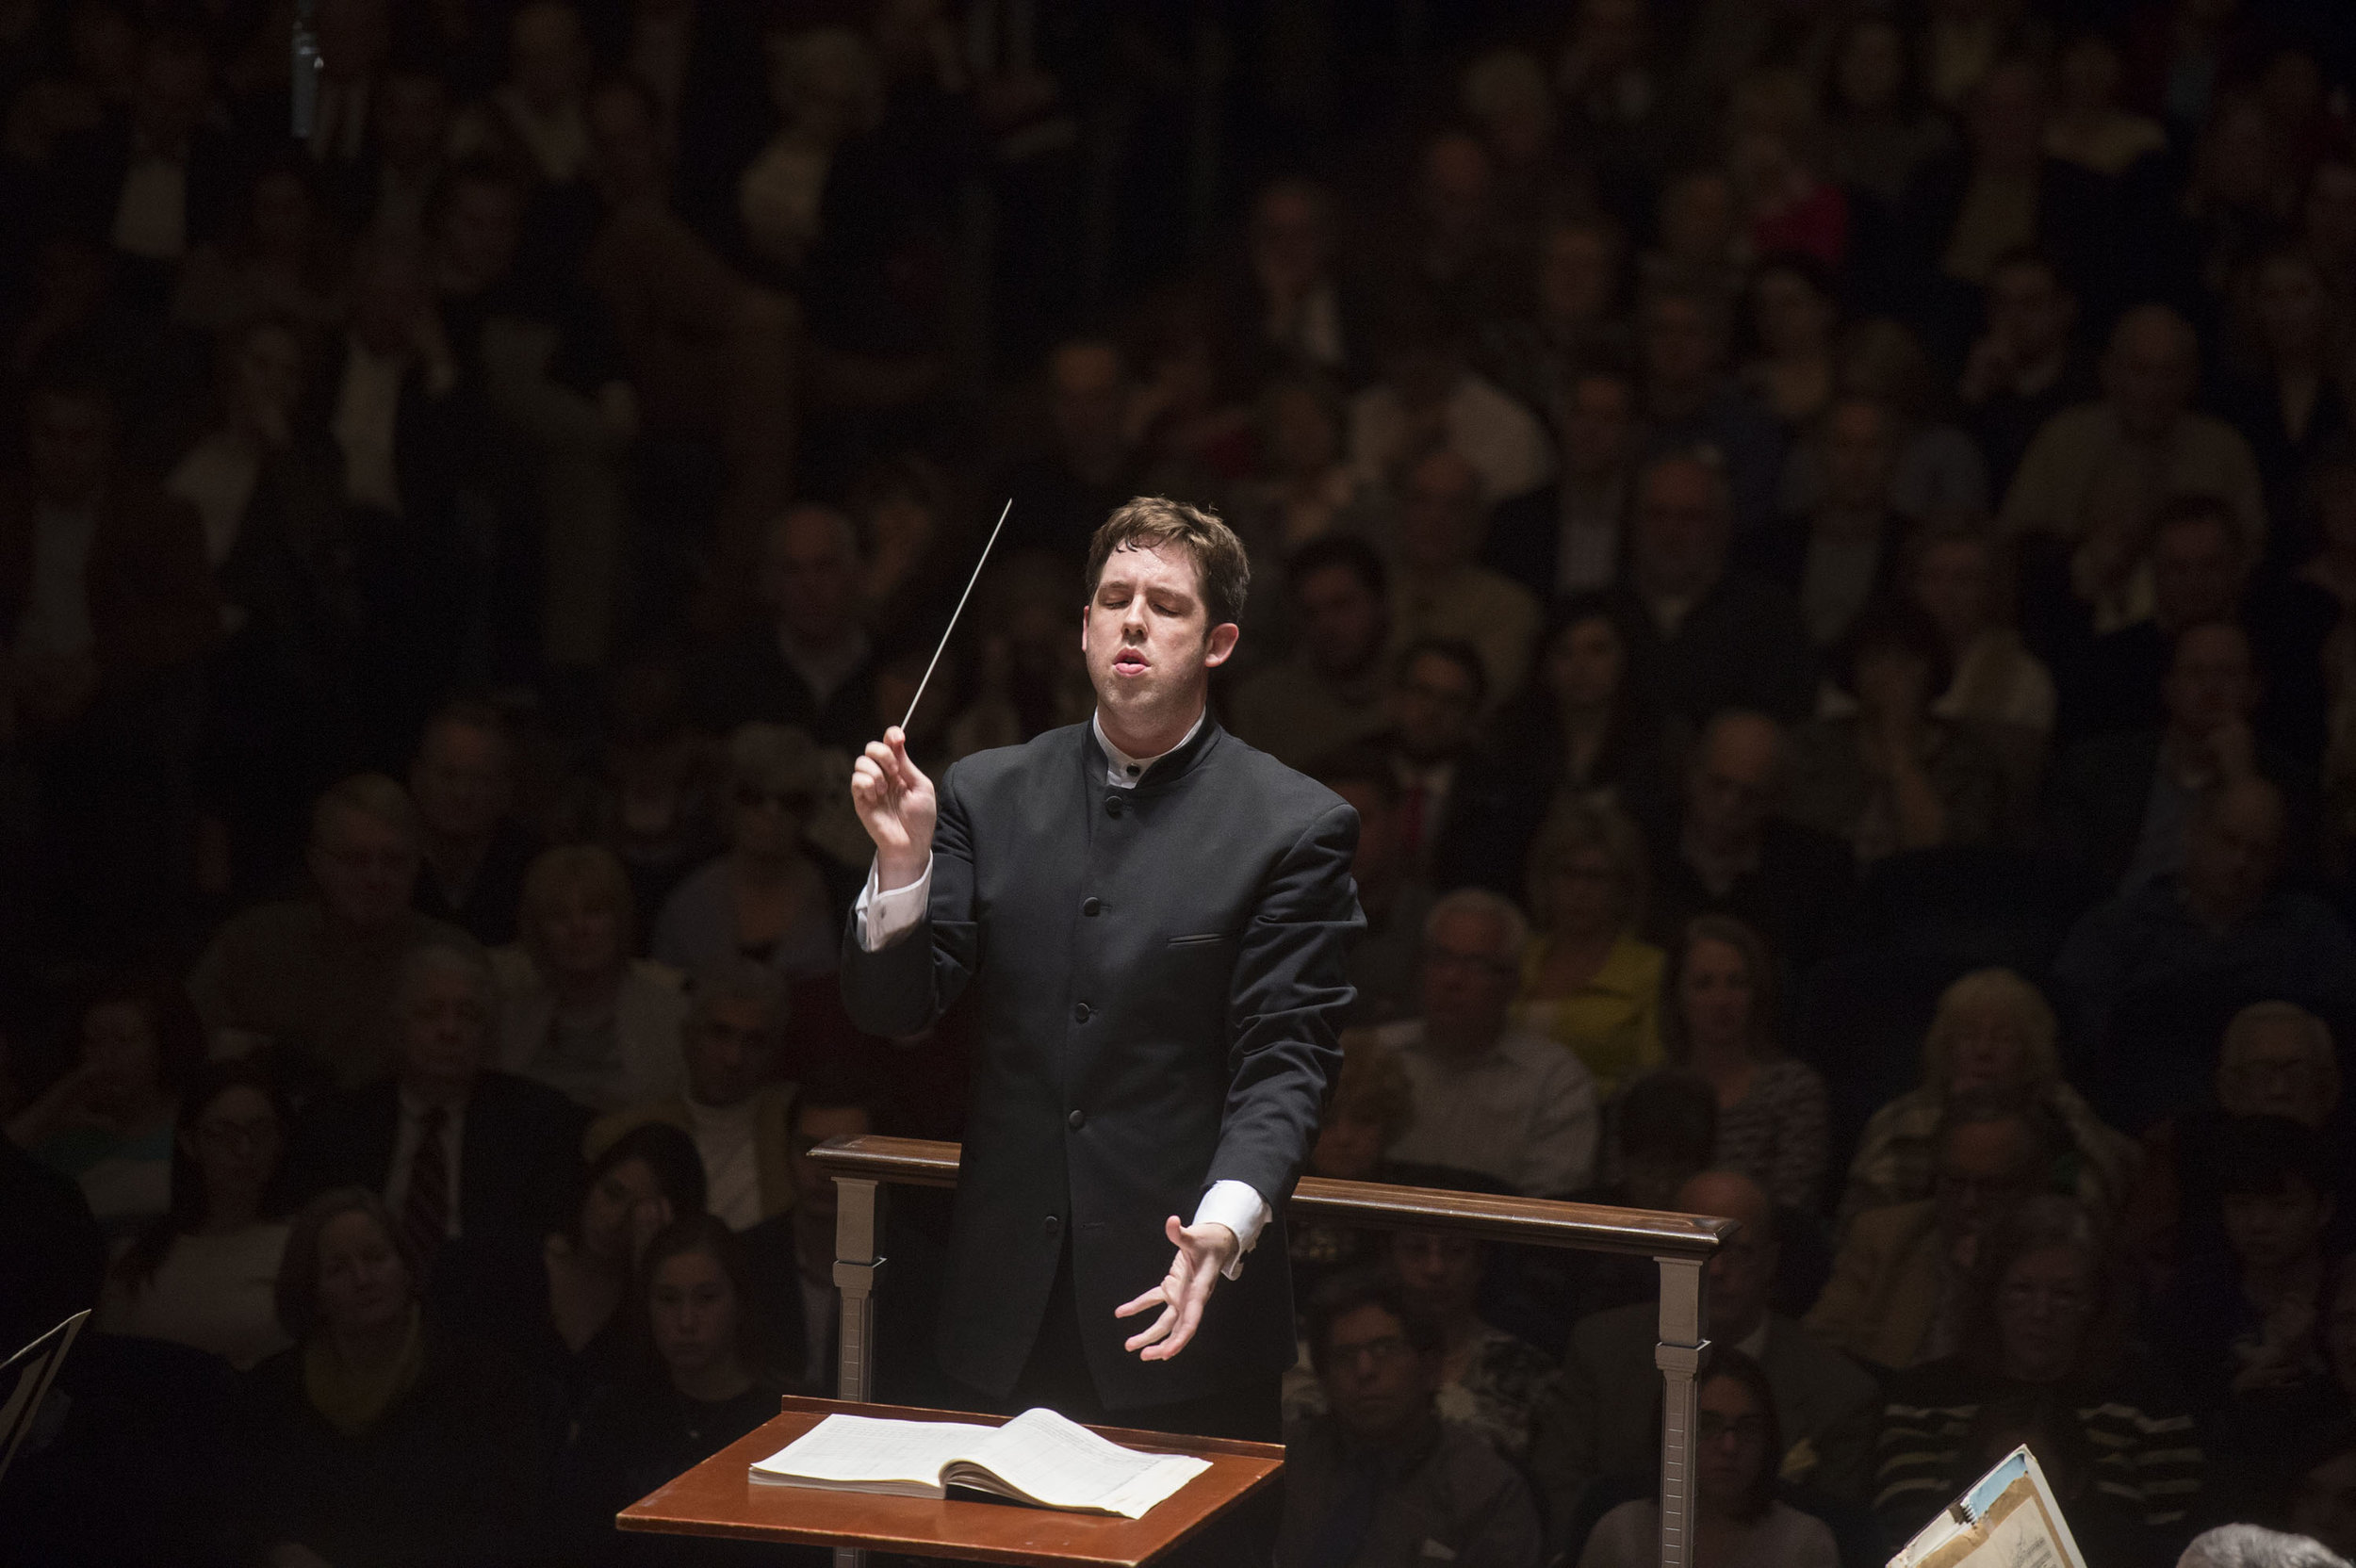 """Associate conductor Brett Mitchell is about to conclude his tenure with the Cleveland Orchestra with a live performance with film of Bernstein's """"West Side Story,"""" a project he describes as """"tailor-made for my relationship with the Cleveland Orchestra."""" (Photo by Roger Mastroianni)"""